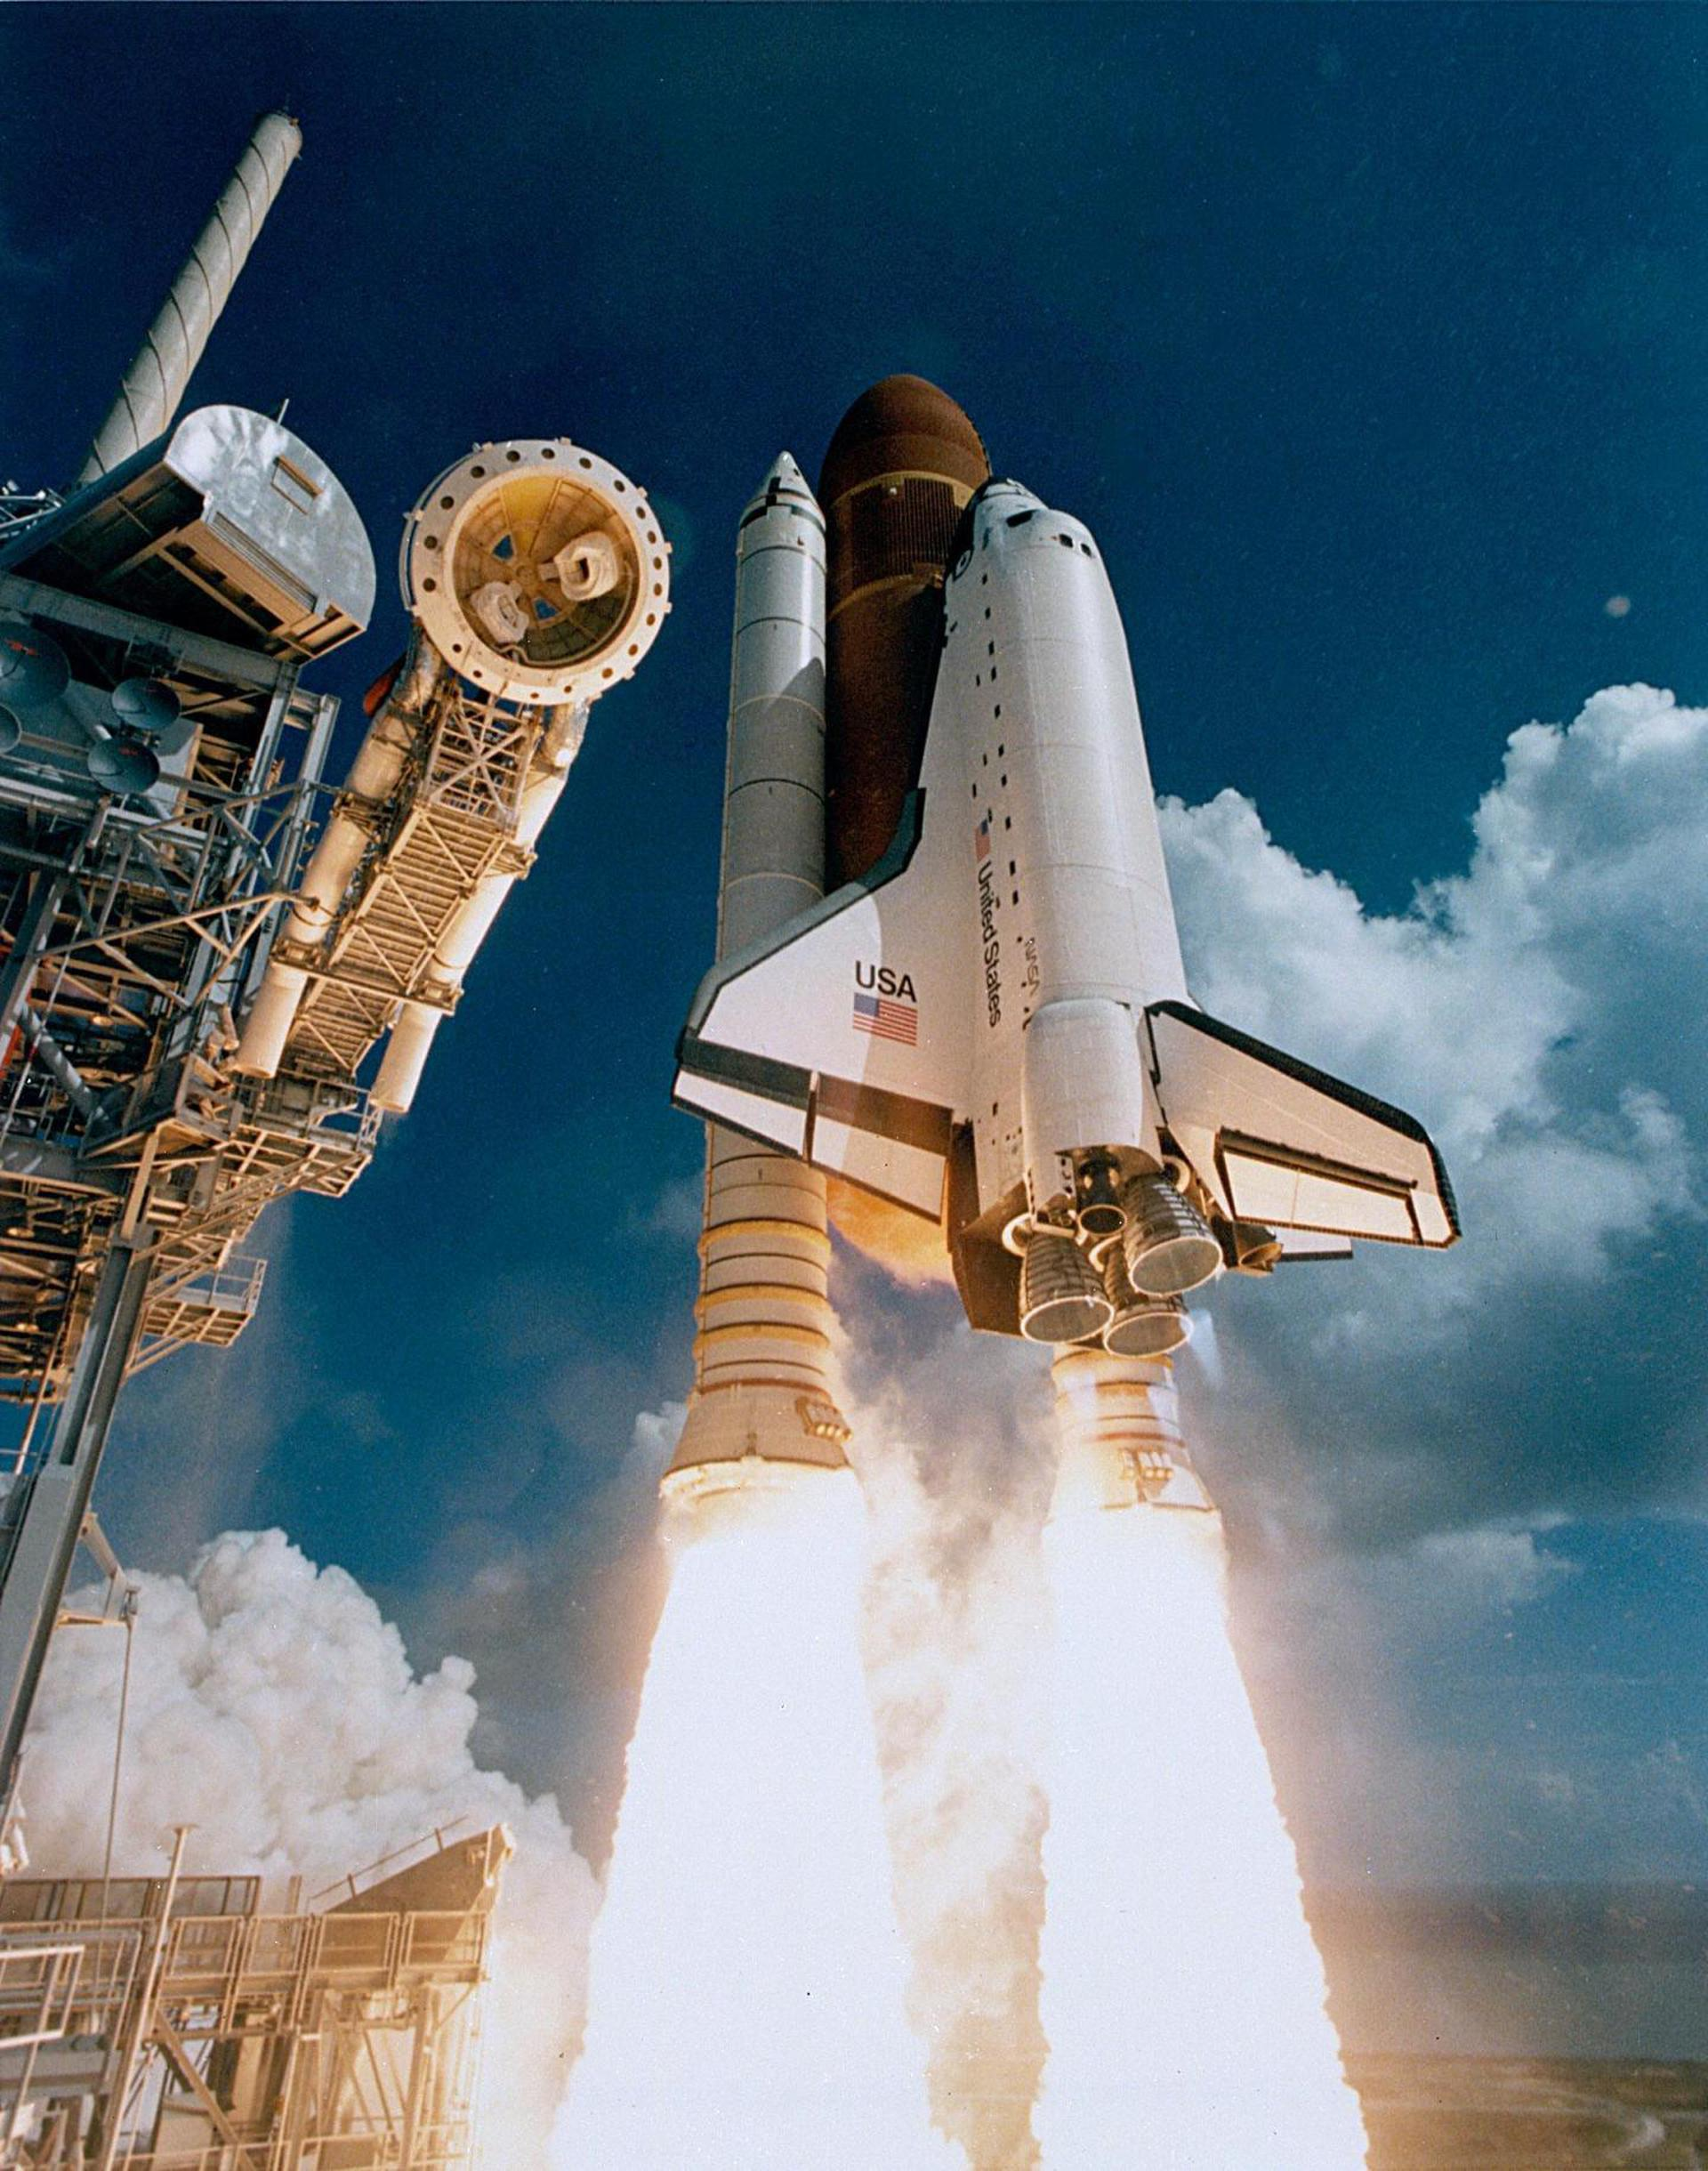 Space Shuttle Atlantis / OV-104 | STS-132